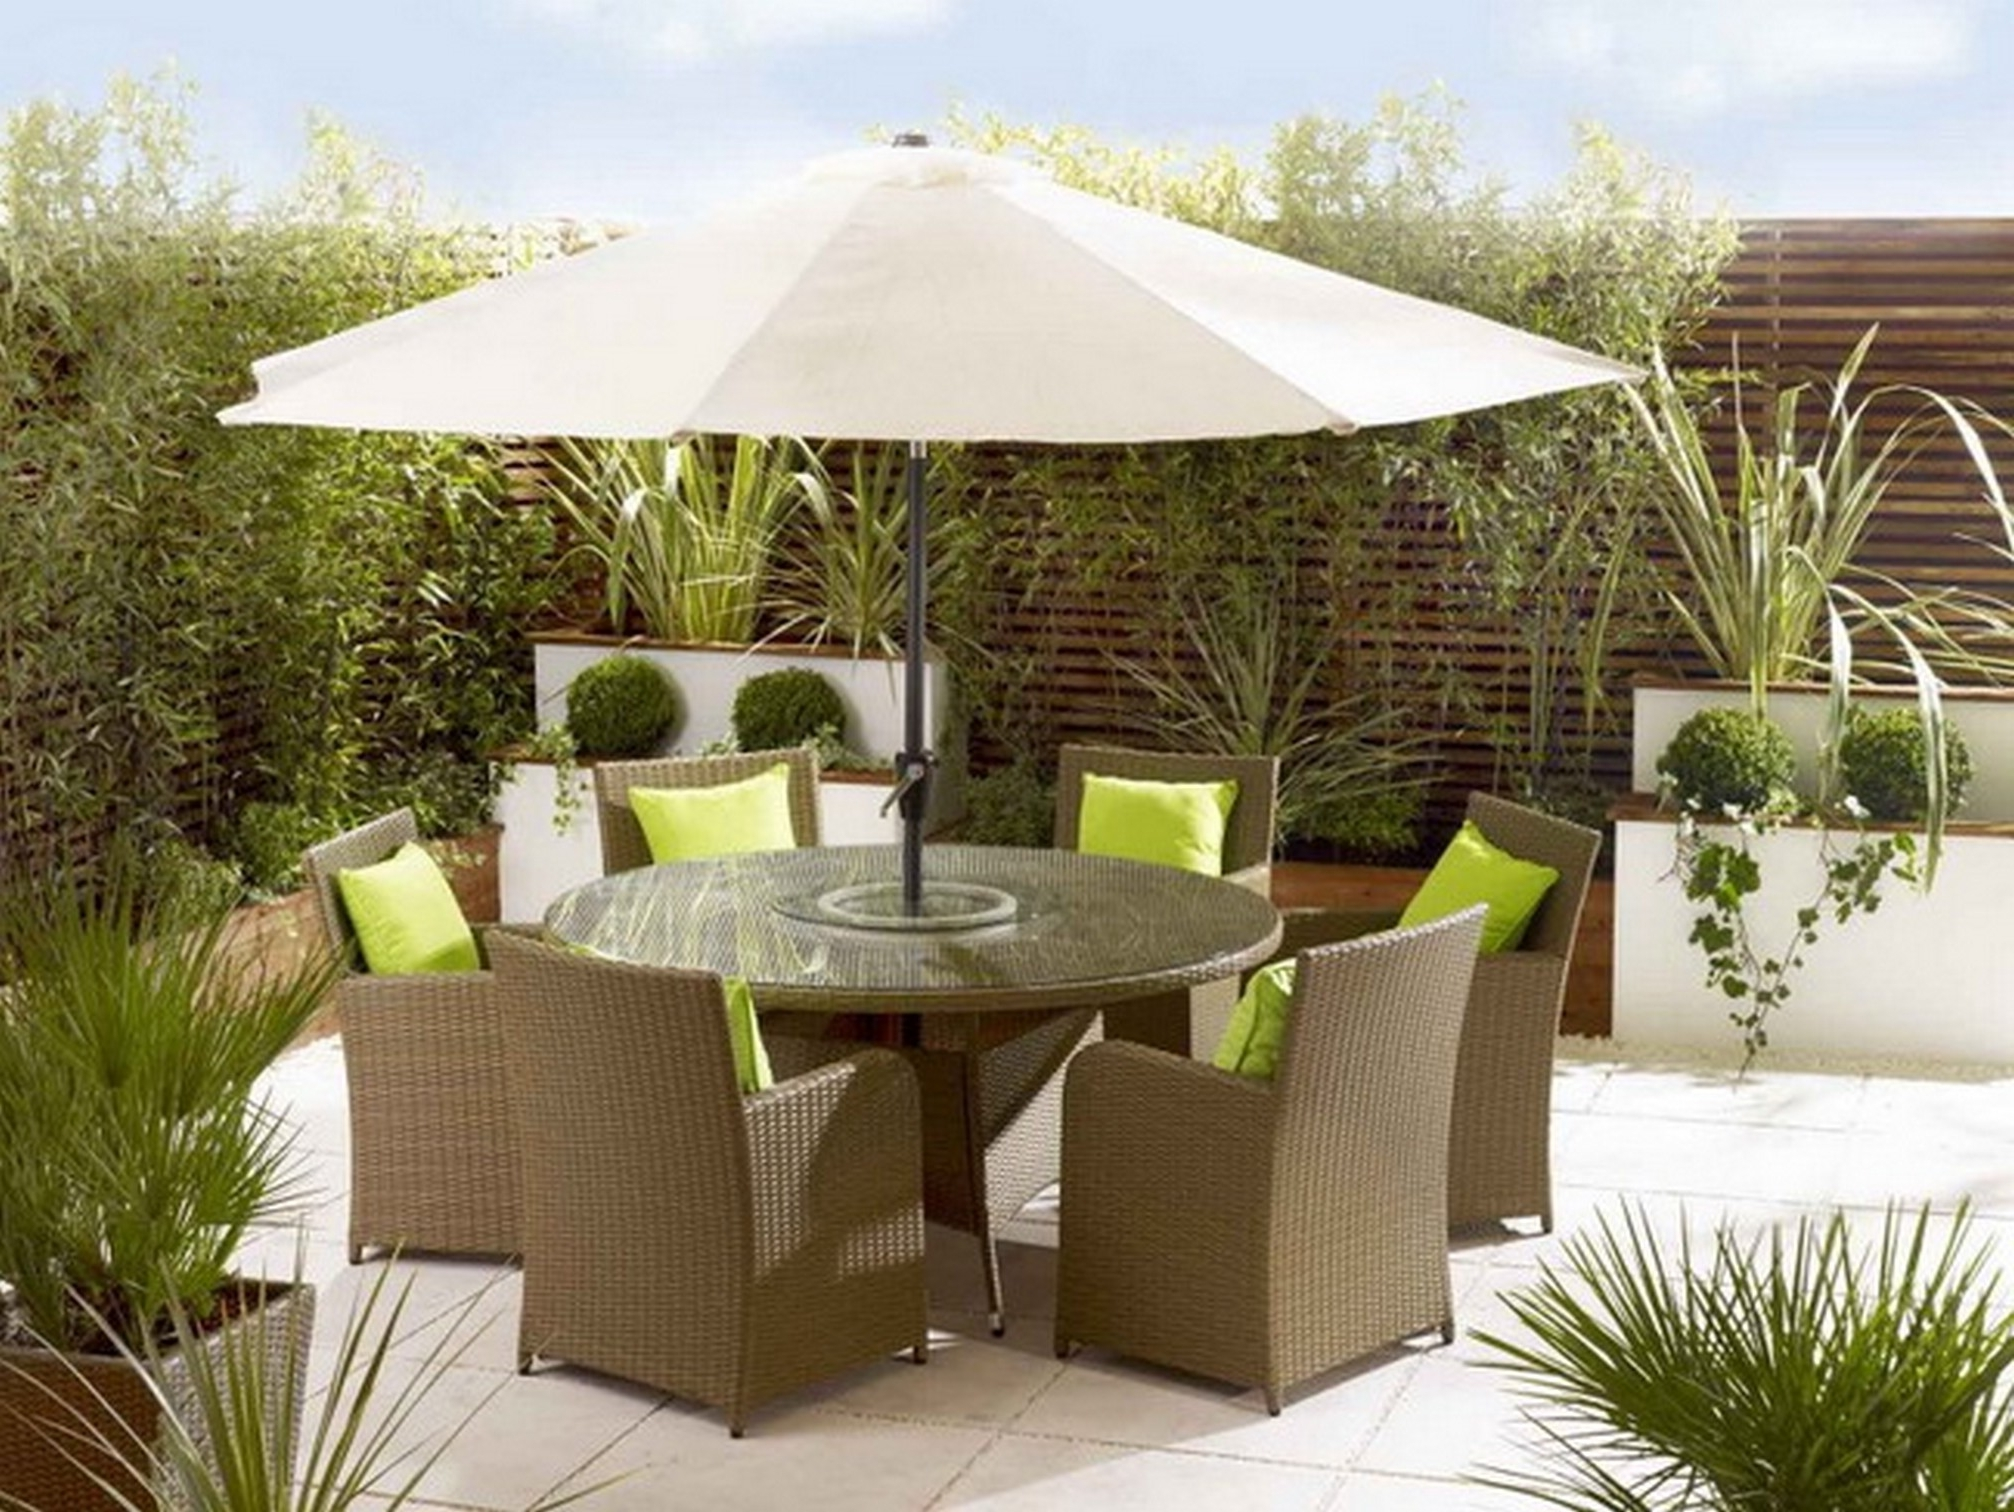 Patio Furniture With Umbrellas Within Favorite Patio Umbrella Table Attachment — Mistikcamping Home Design : The (View 12 of 20)